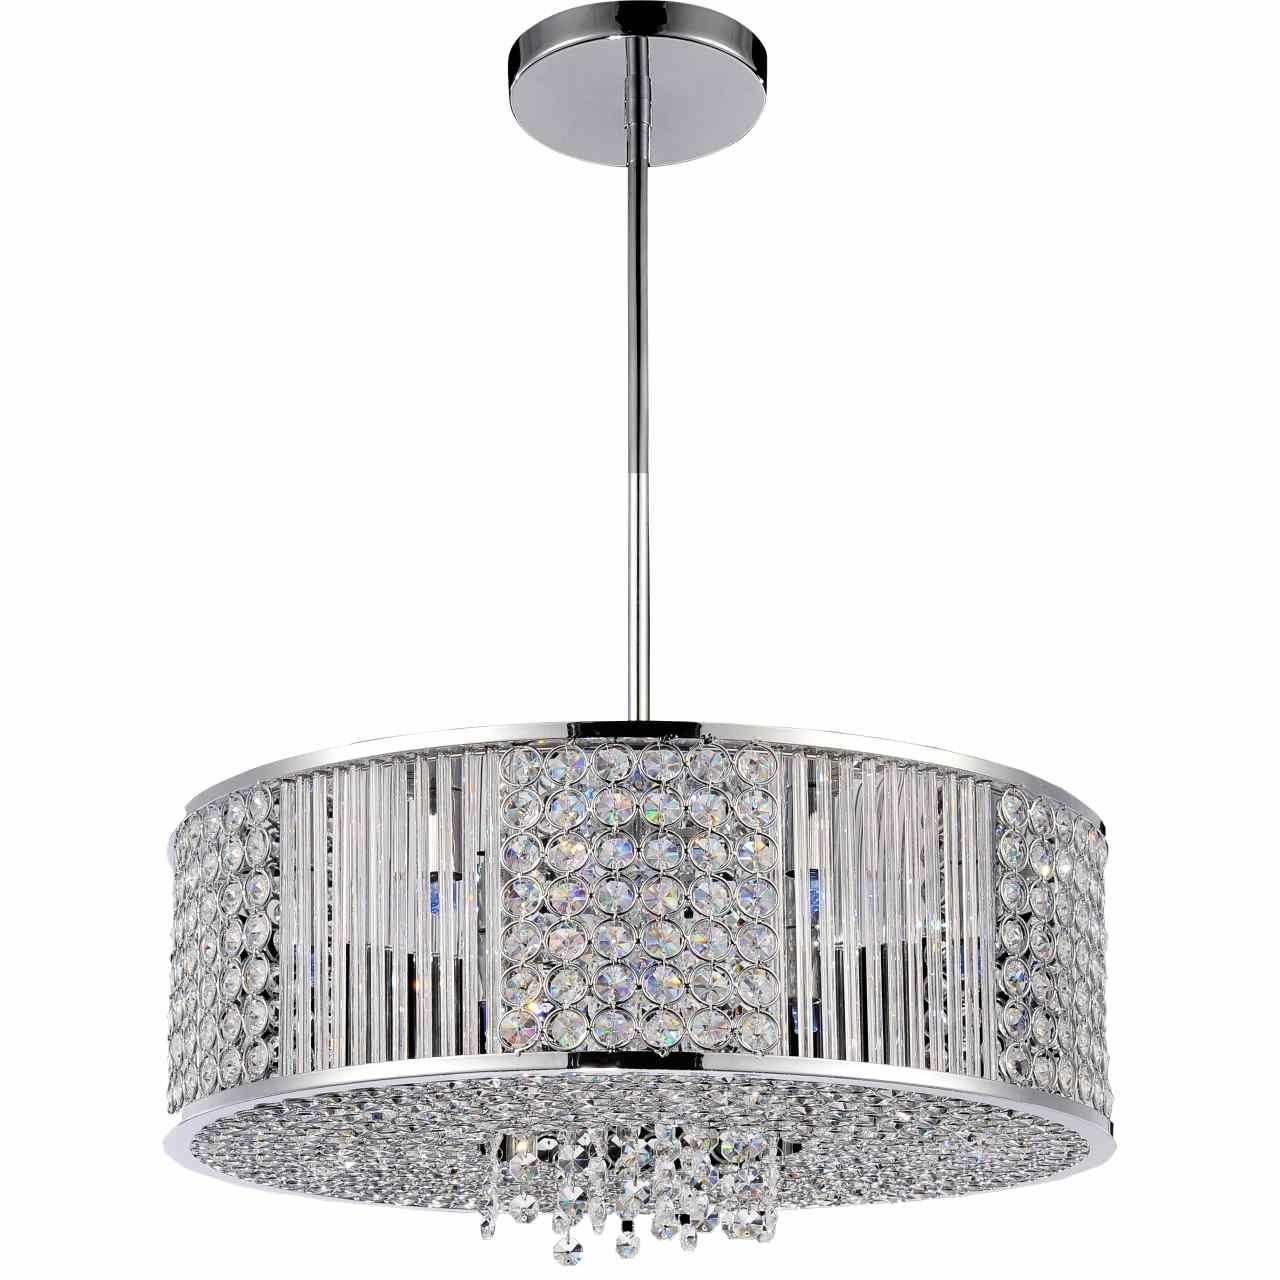 Chandelier Chrome Regarding Most Recently Released Brizzo Lighting Stores (View 4 of 15)